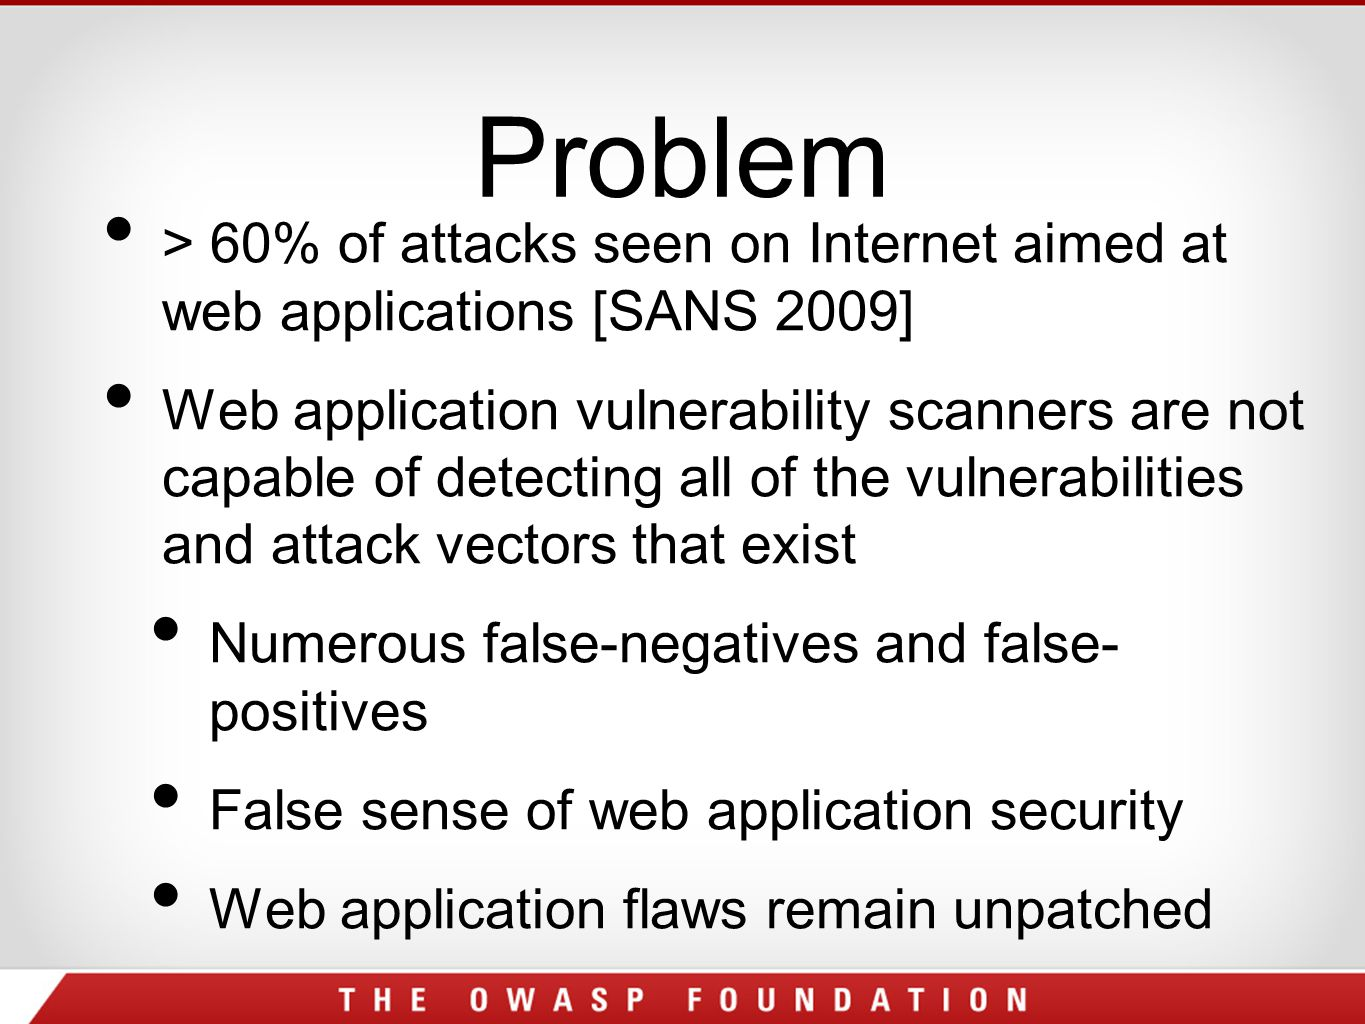 Problem > 60% of attacks seen on Internet aimed at web applications [SANS 2009] Web application vulnerability scanners are not capable of detecting all of the vulnerabilities and attack vectors that exist Numerous false-negatives and false- positives False sense of web application security Web application flaws remain unpatched